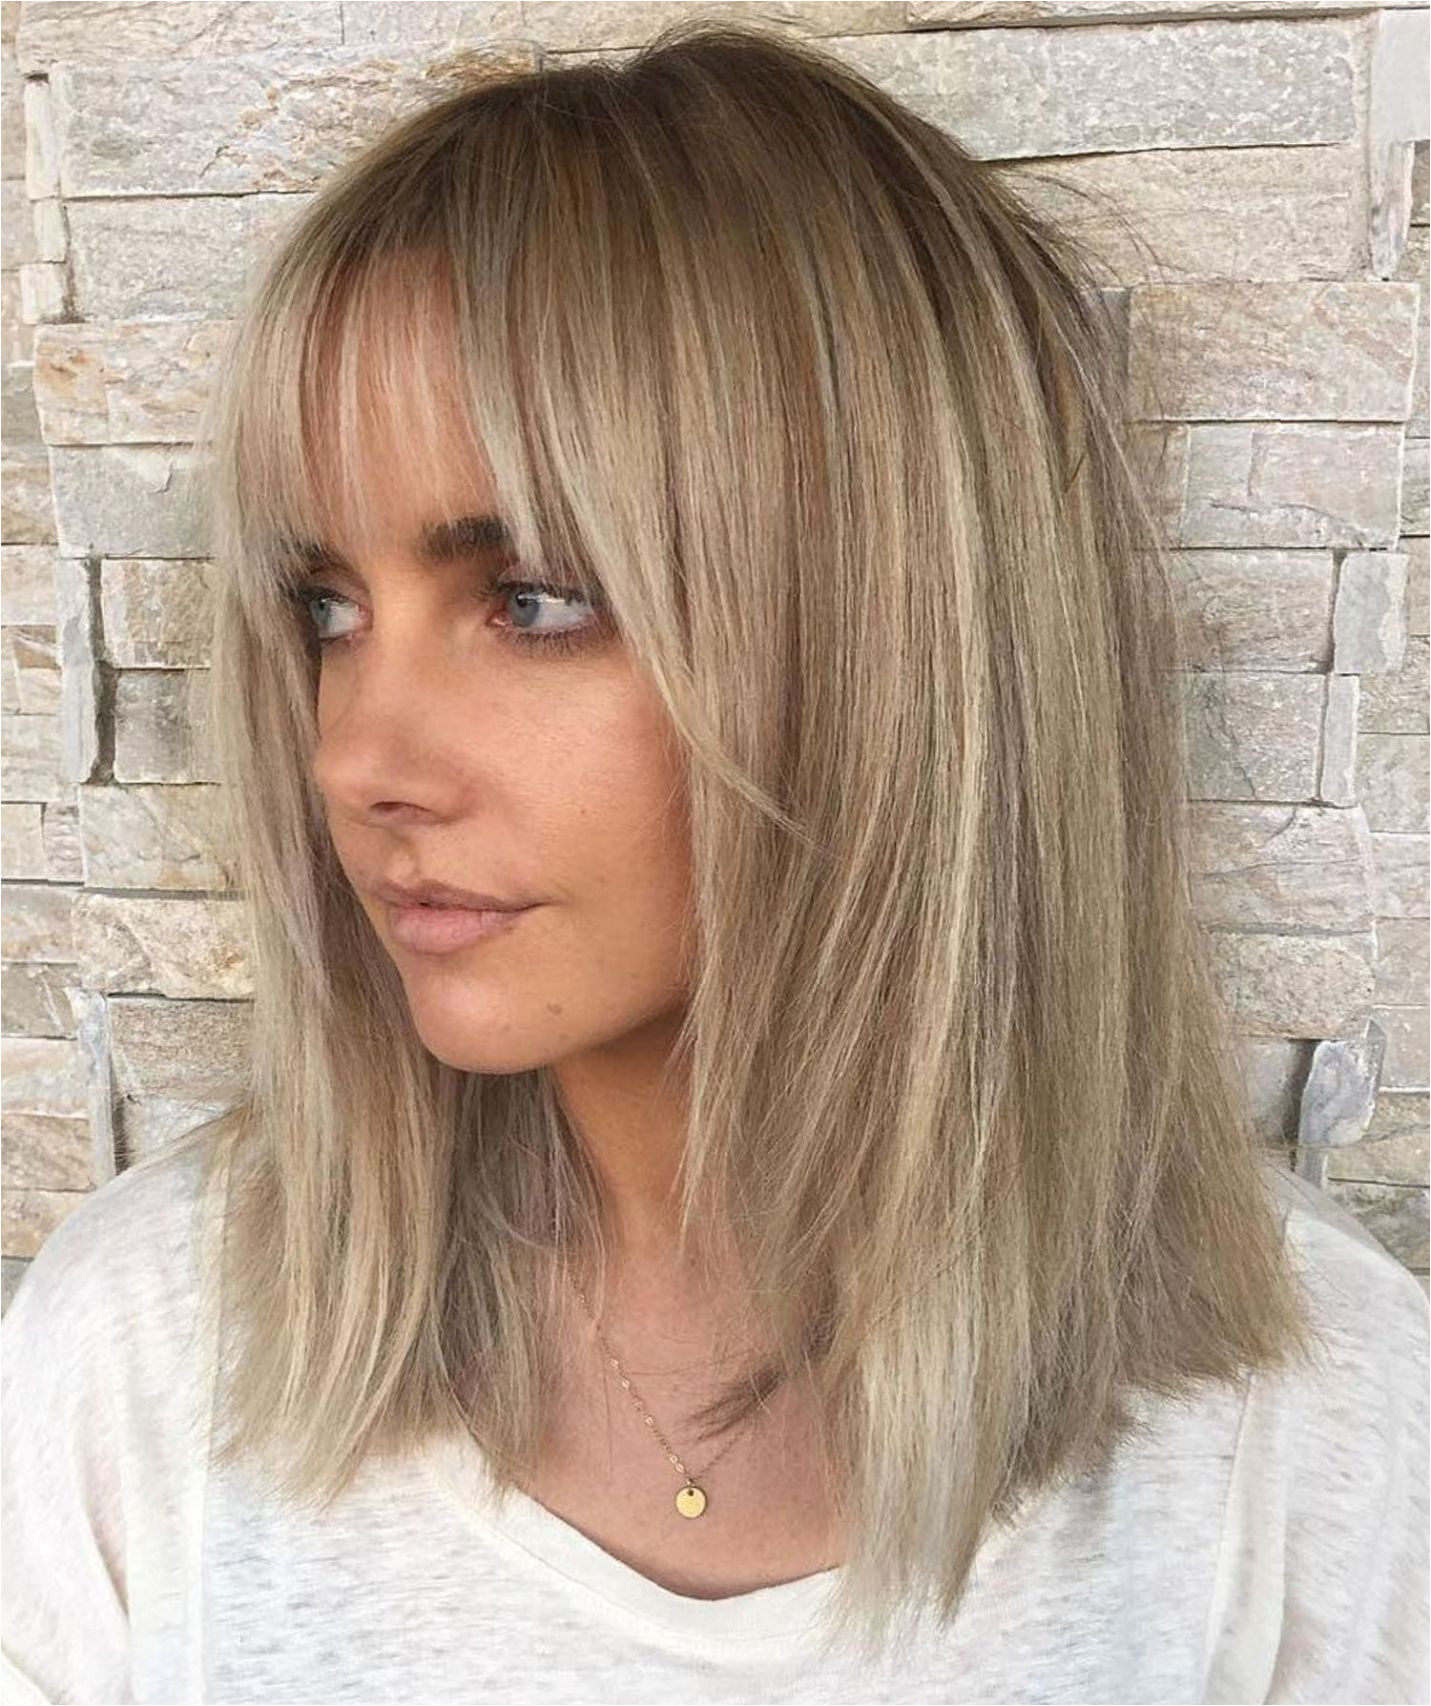 Hairstyles for Thinning Hair In Front Woman 60 Fun and Flattering Medium Hairstyles for Women Hair